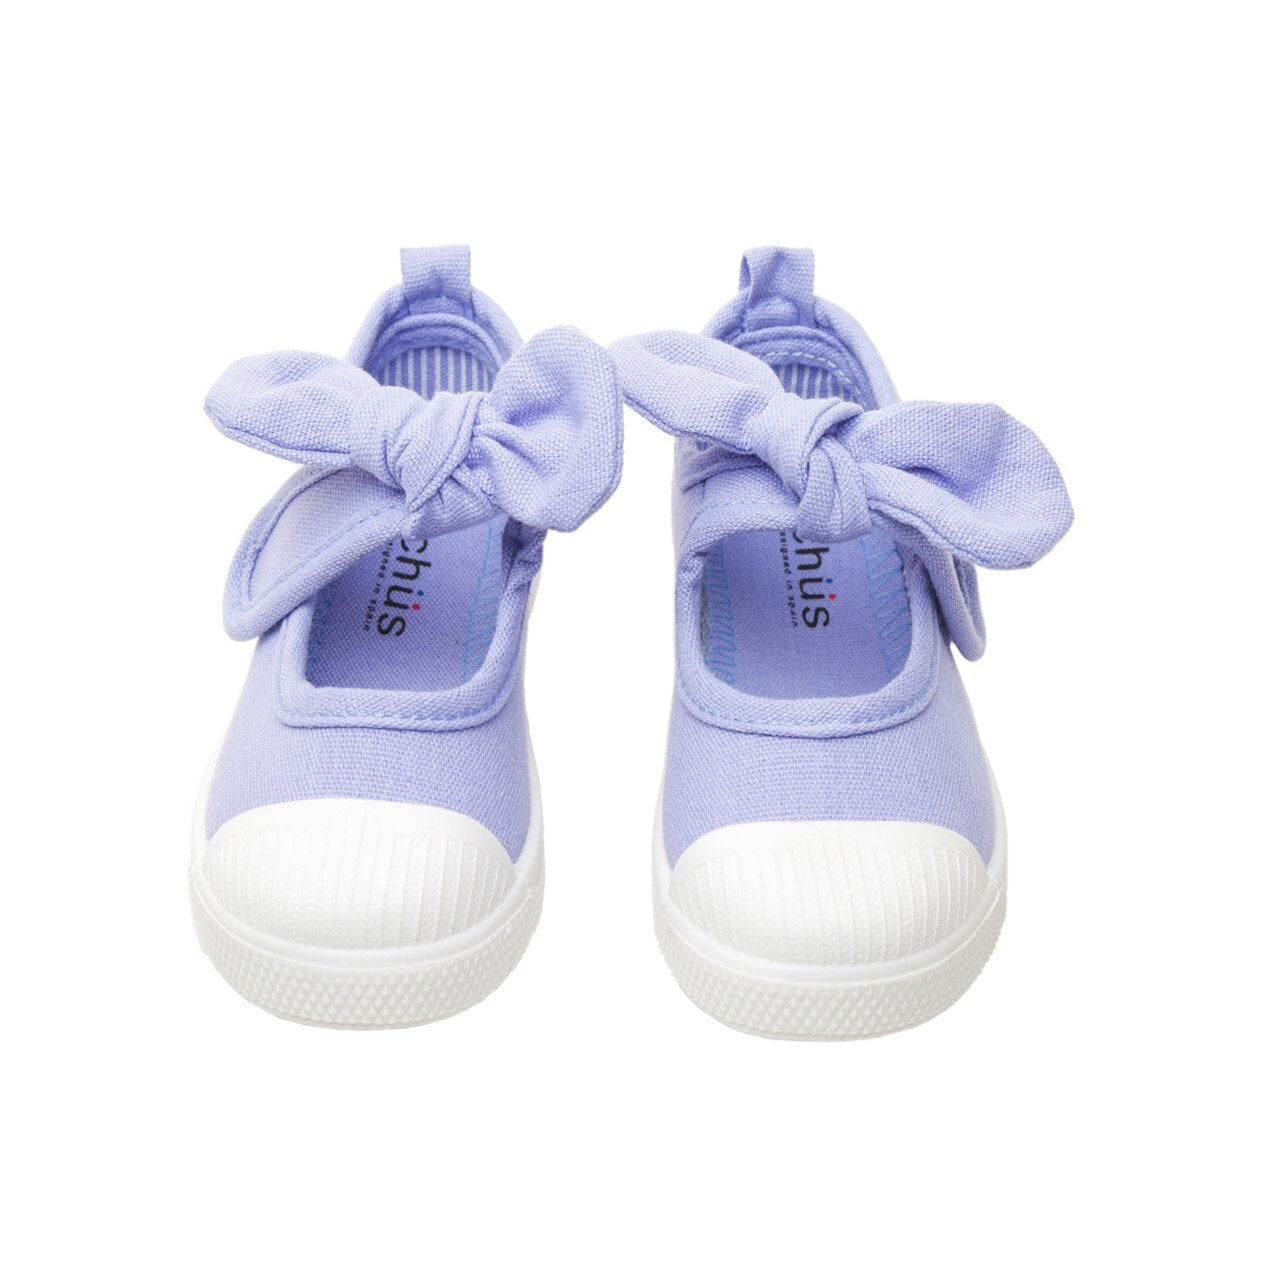 Chus shoes Athena sky